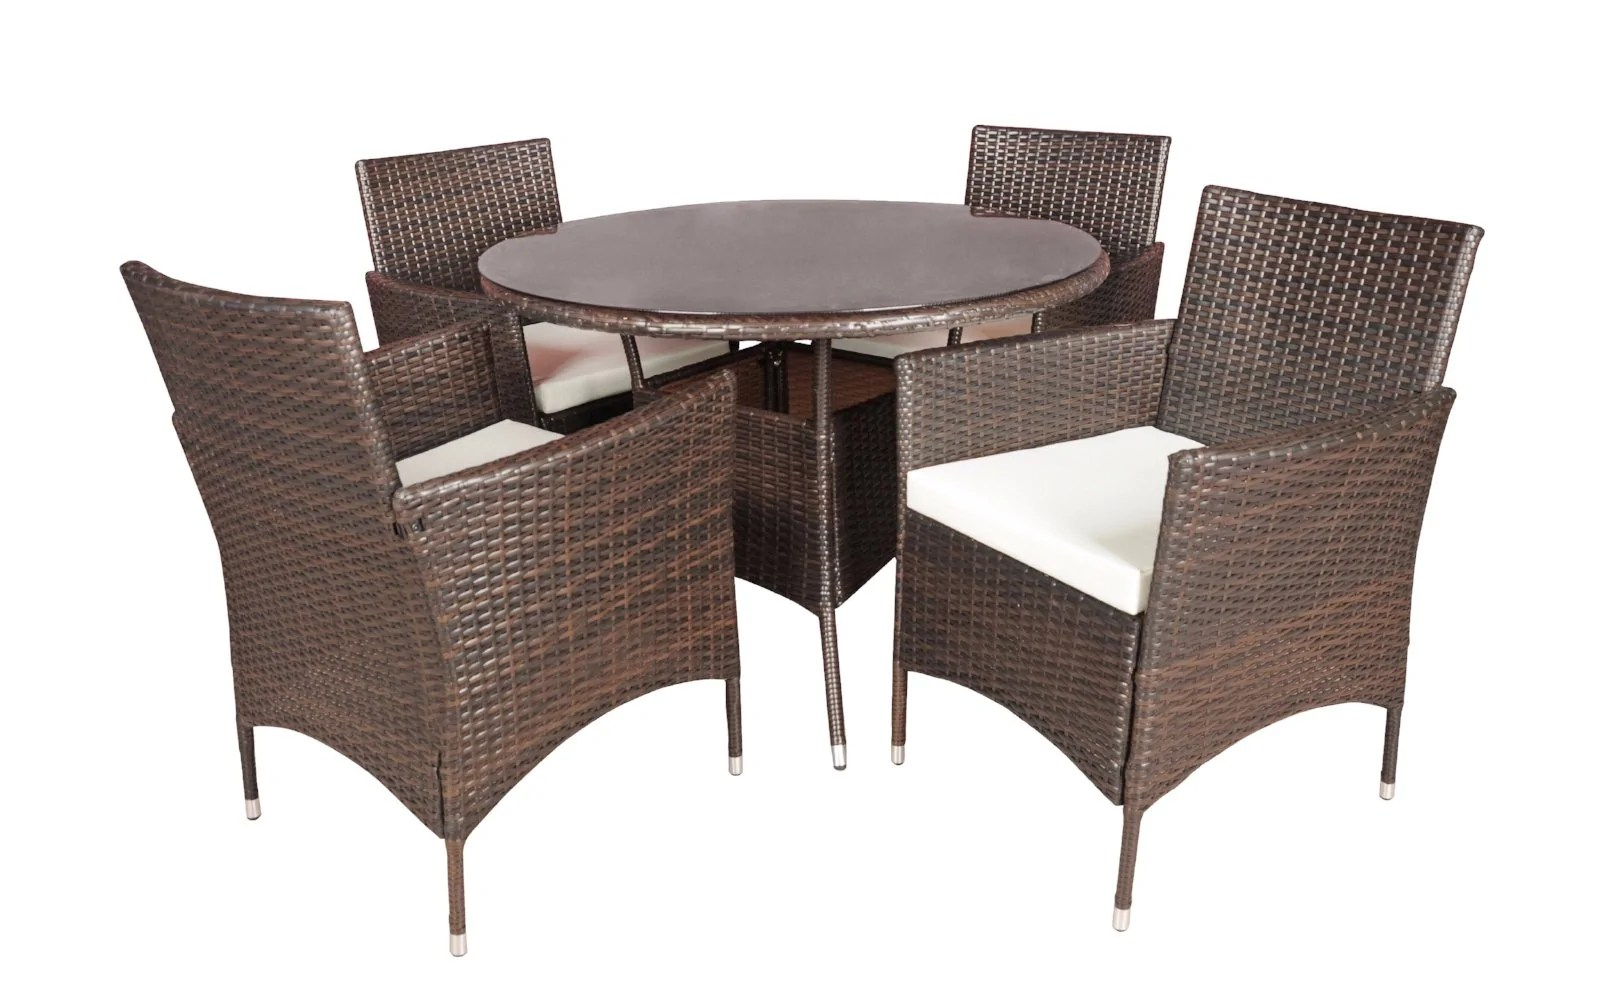 Dining Room Chairs Set Of 4 Malibu Classic Rattan Outdoor Dining Table And 4 Chairs Set